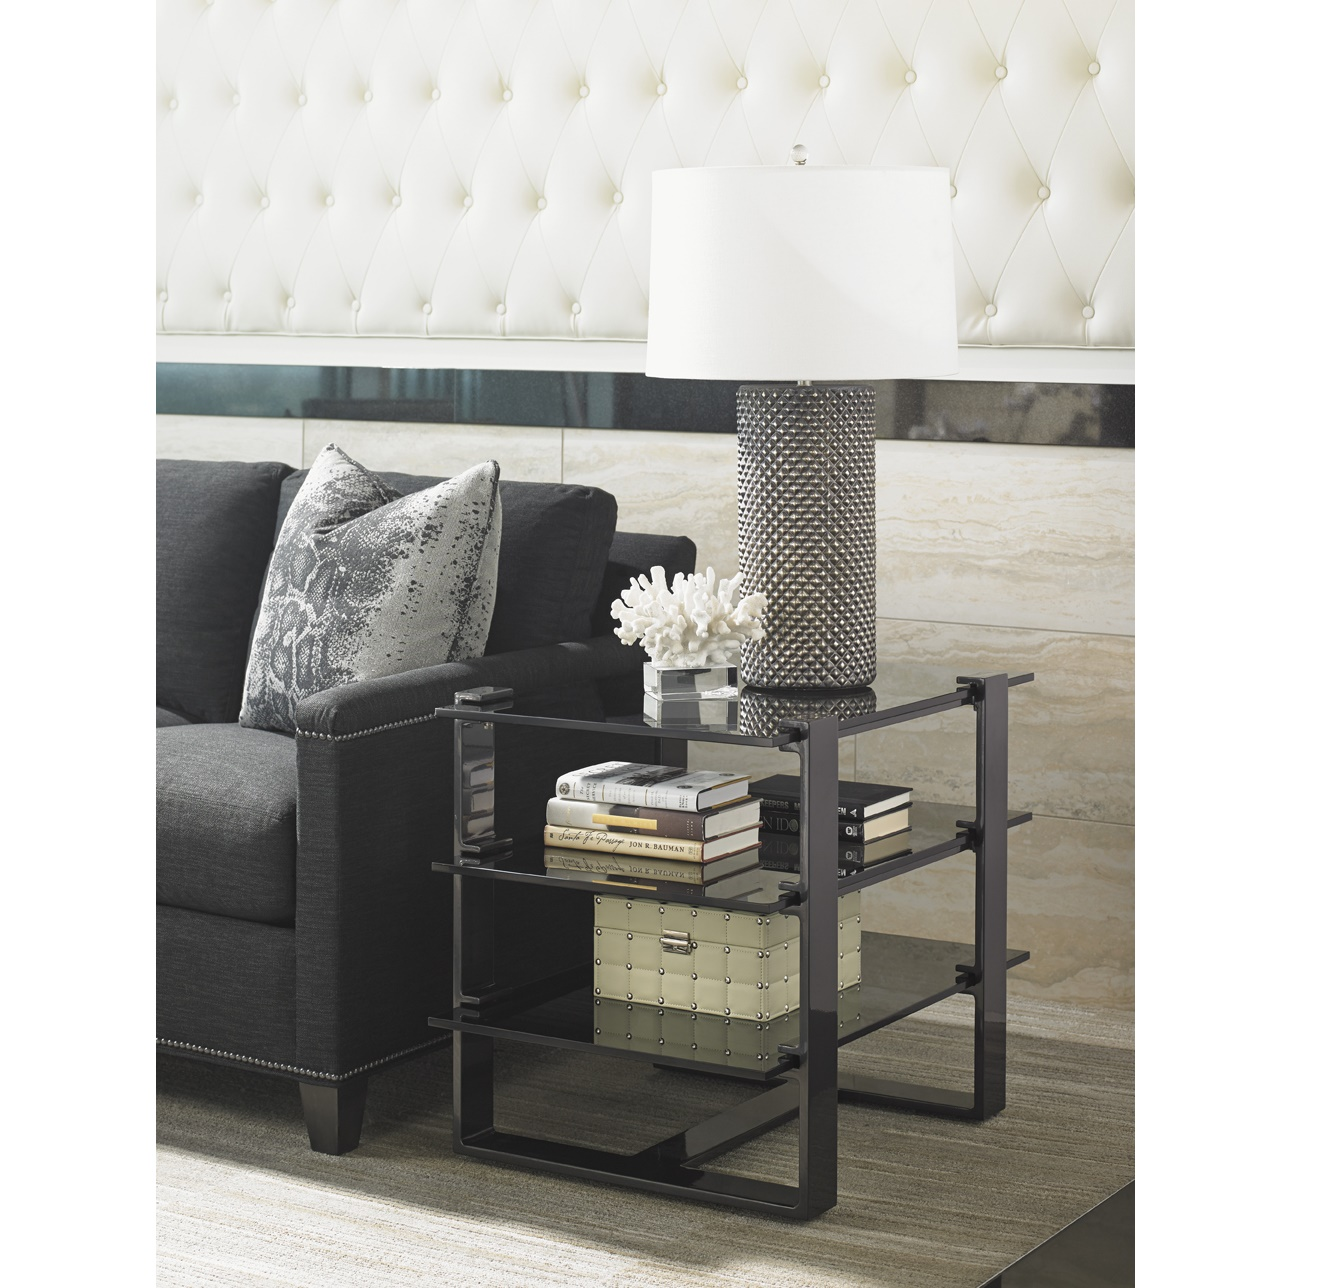 Lexington End Tables for Sale